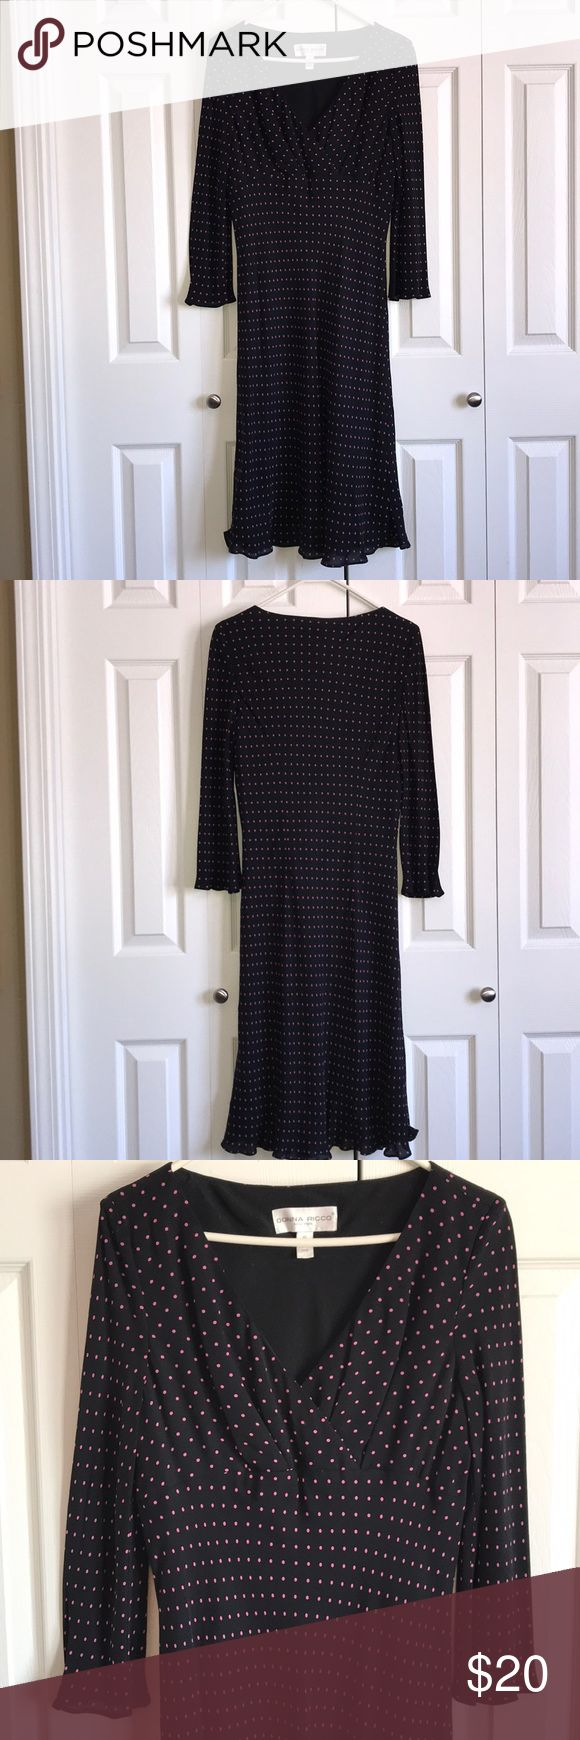 Donna Ricco Polka Dot Dress Like new Donna Ricco, 100% silk dress. Knee-length. 3/4 sleeves. VERY comfortable and shows off curves perfectly. Dress is black with pink polka dots. Not super low cut, but low enough to flaunt what you got. Size 10. Donna Ricco Dresses Midi